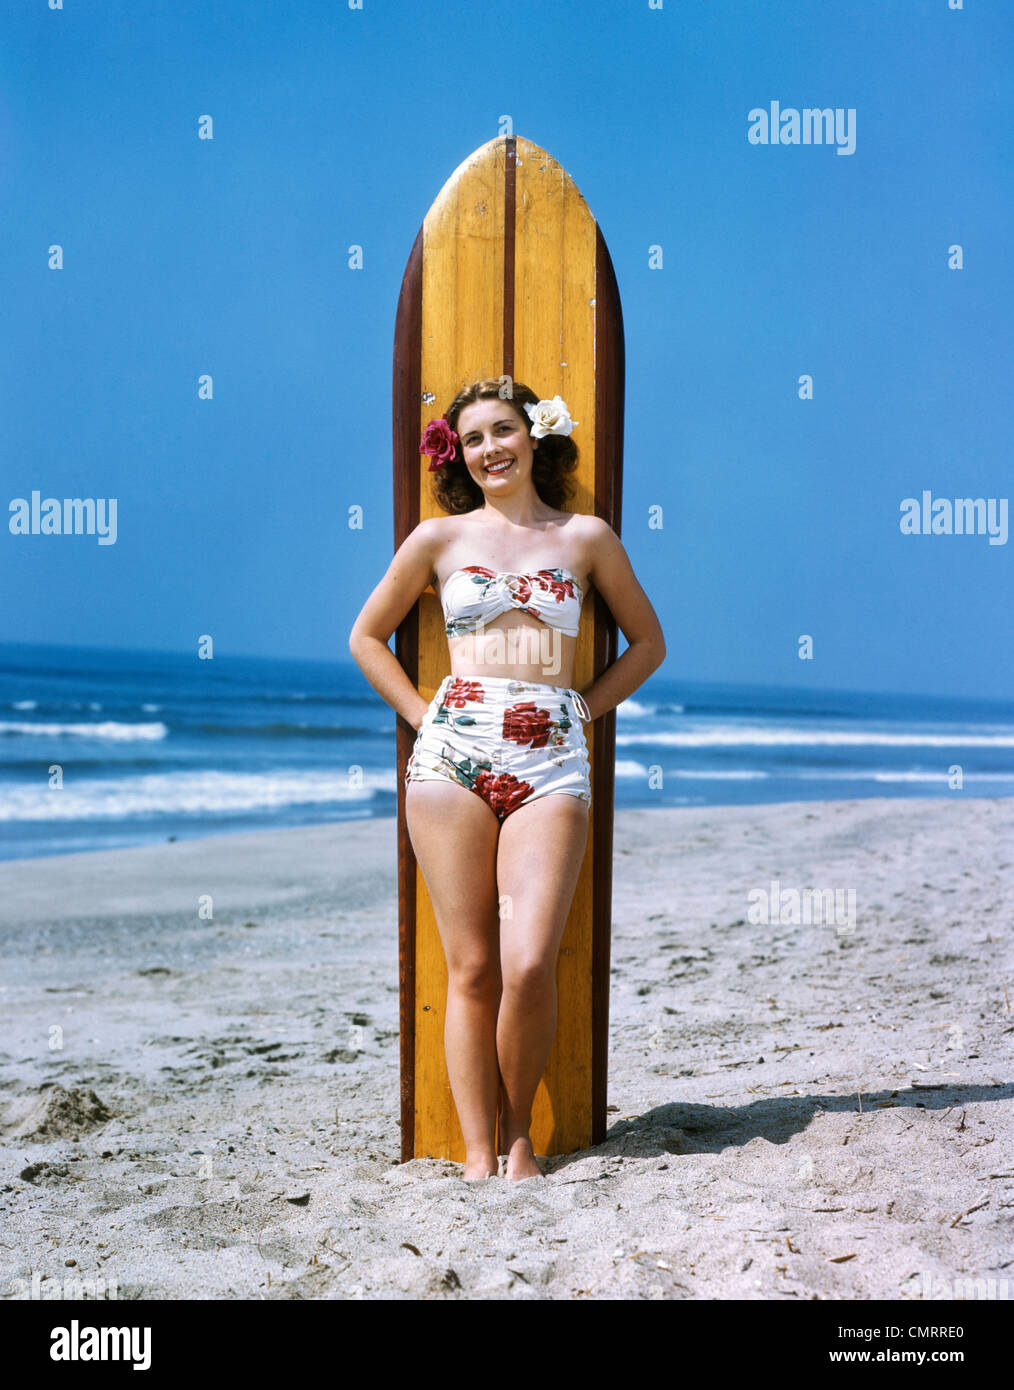 Old Fashioned Swimsuit Pictures